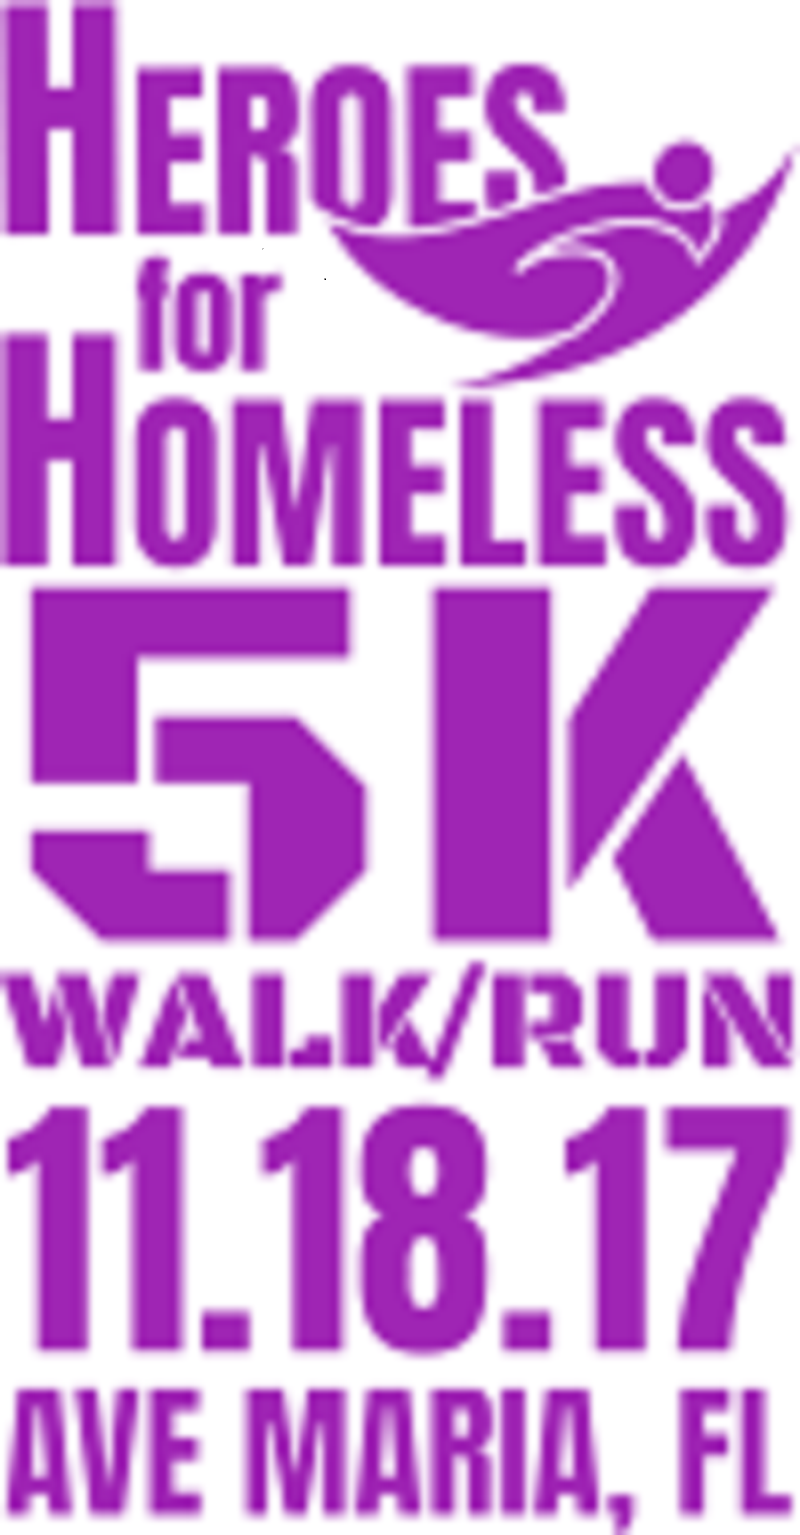 Heroes for Homeless 5K Race in Ave Maria